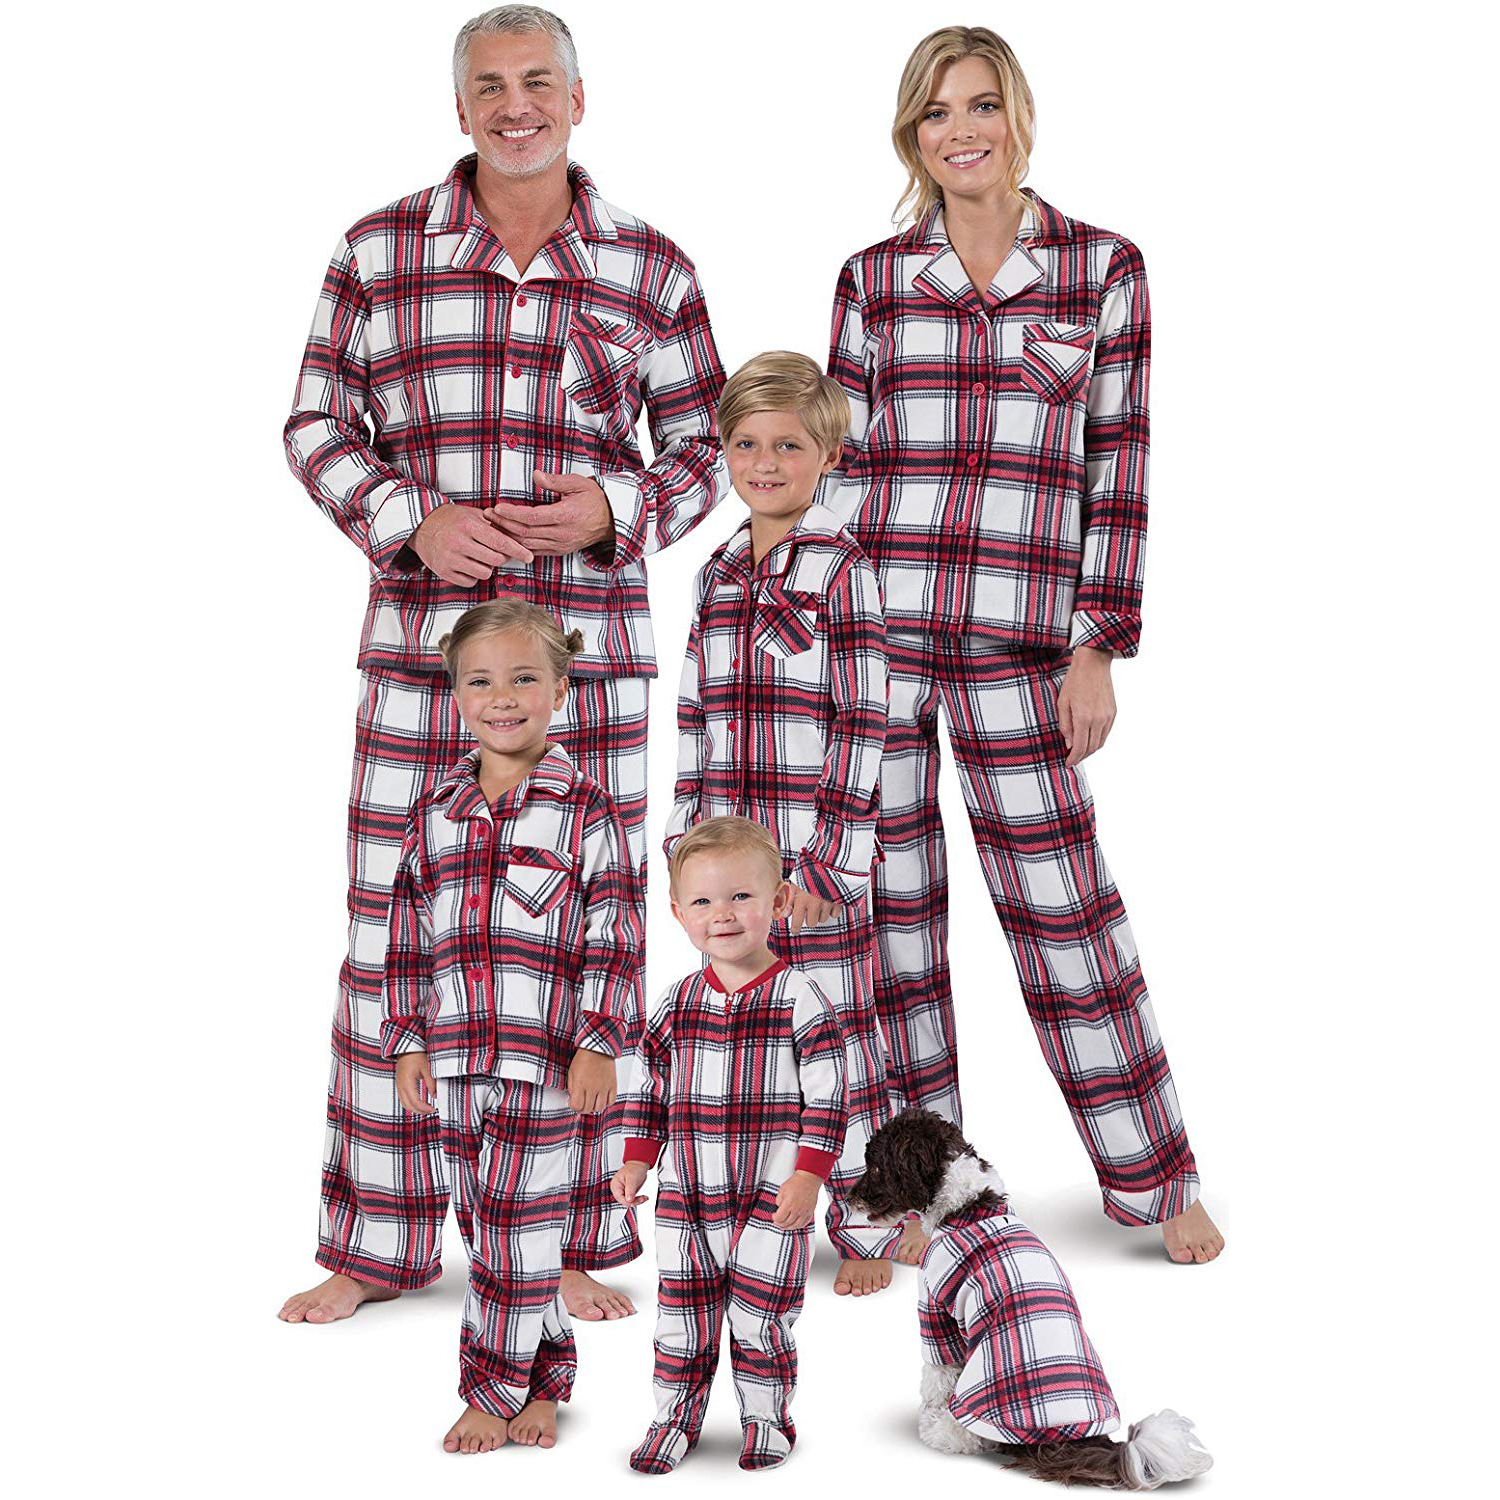 Matching Family Christmas Pajamas.16 Matching Christmas Pajamas The Whole Family Will Love